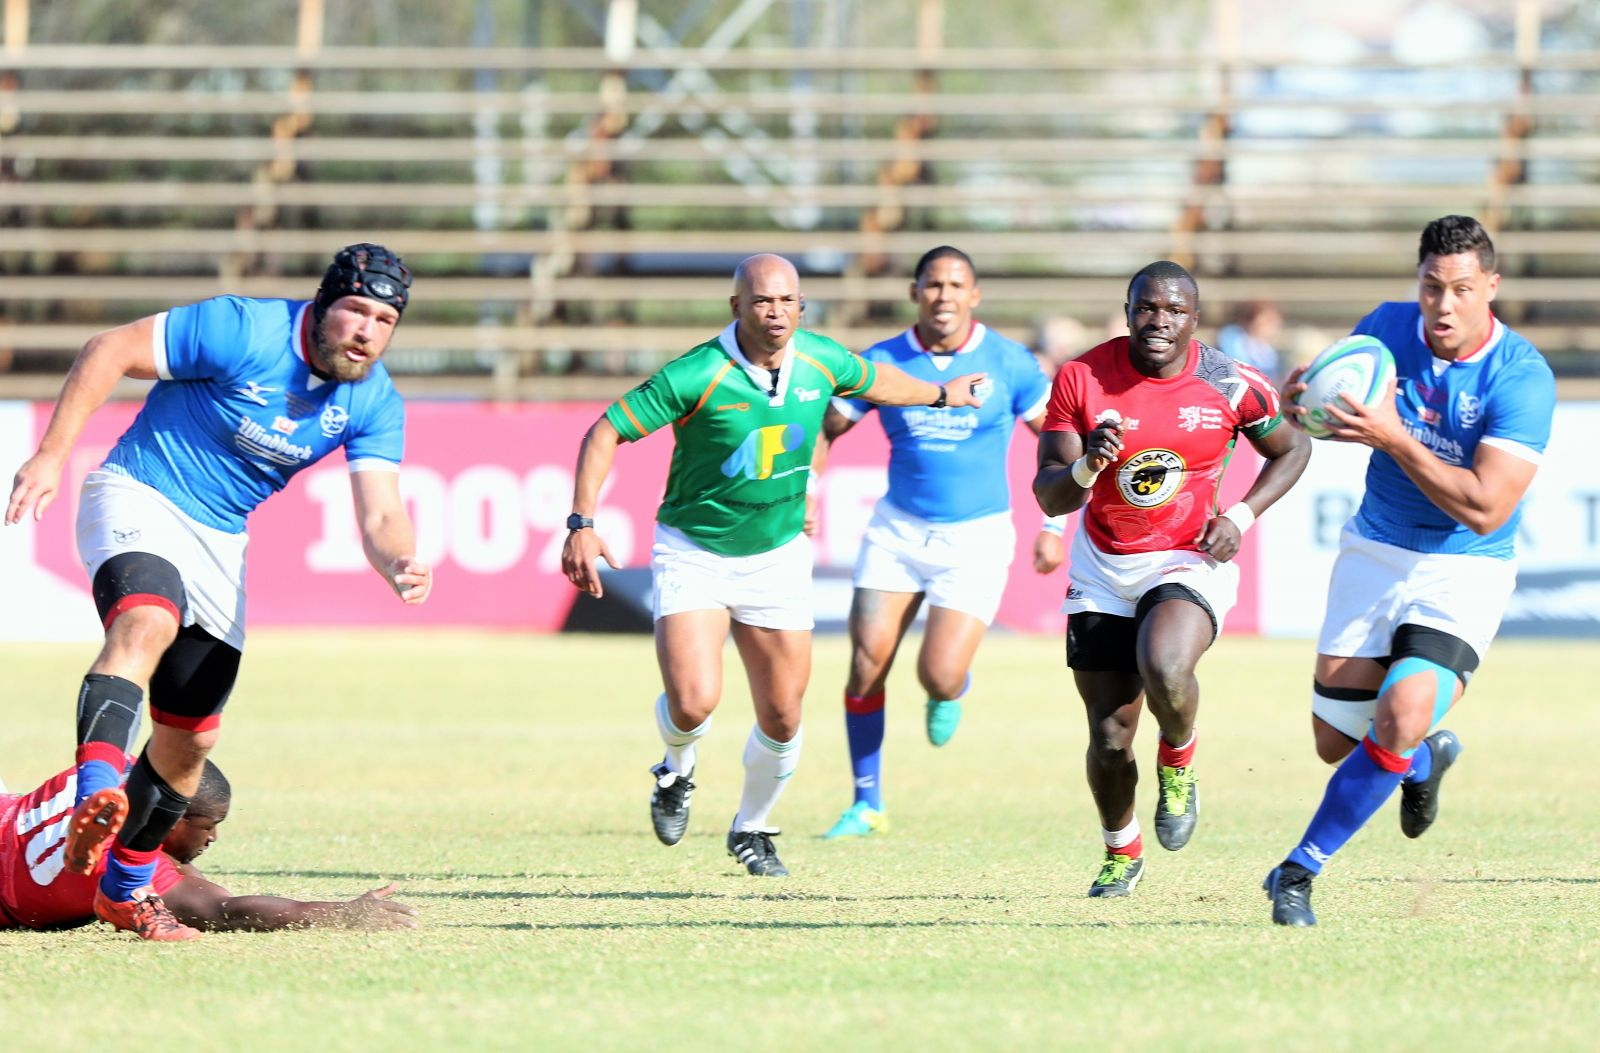 Kenya joins Canada, Germany and Hong Kong in Rugby World Cup repechage